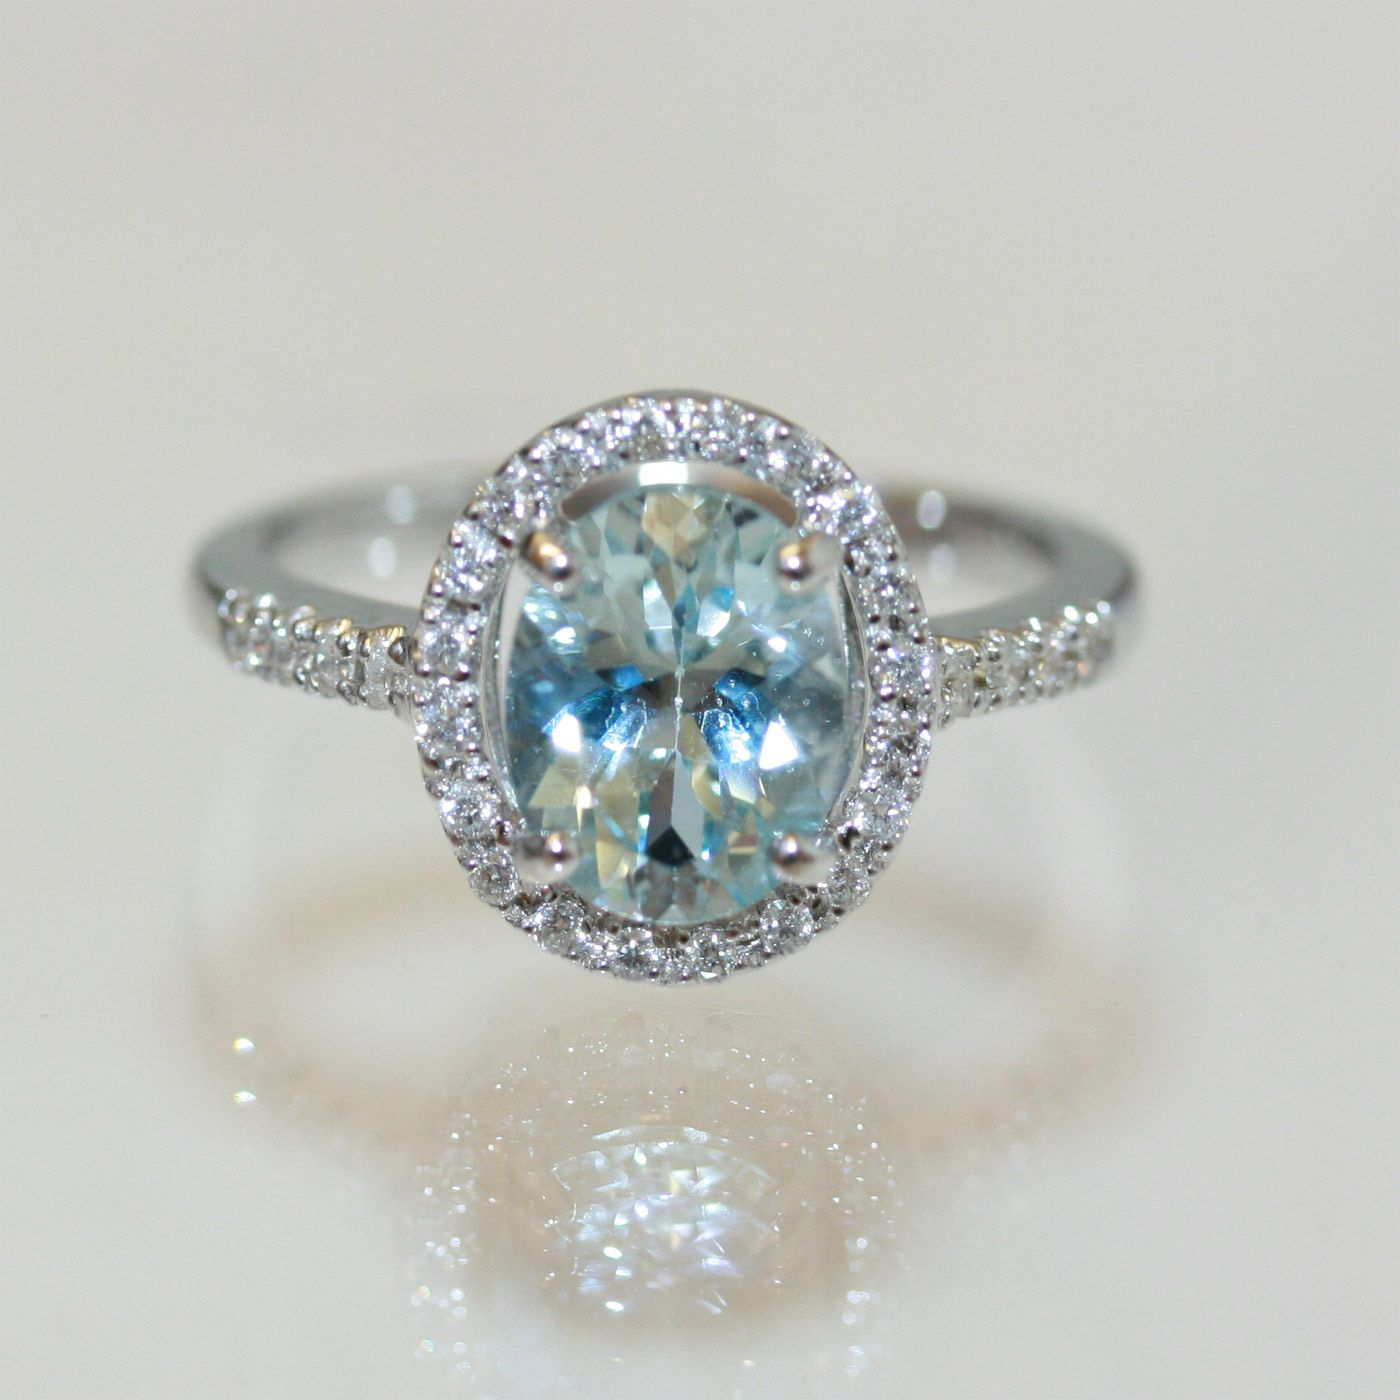 aquamarine rings Buy 18ct aquamarine and diamond ring Sold Rings